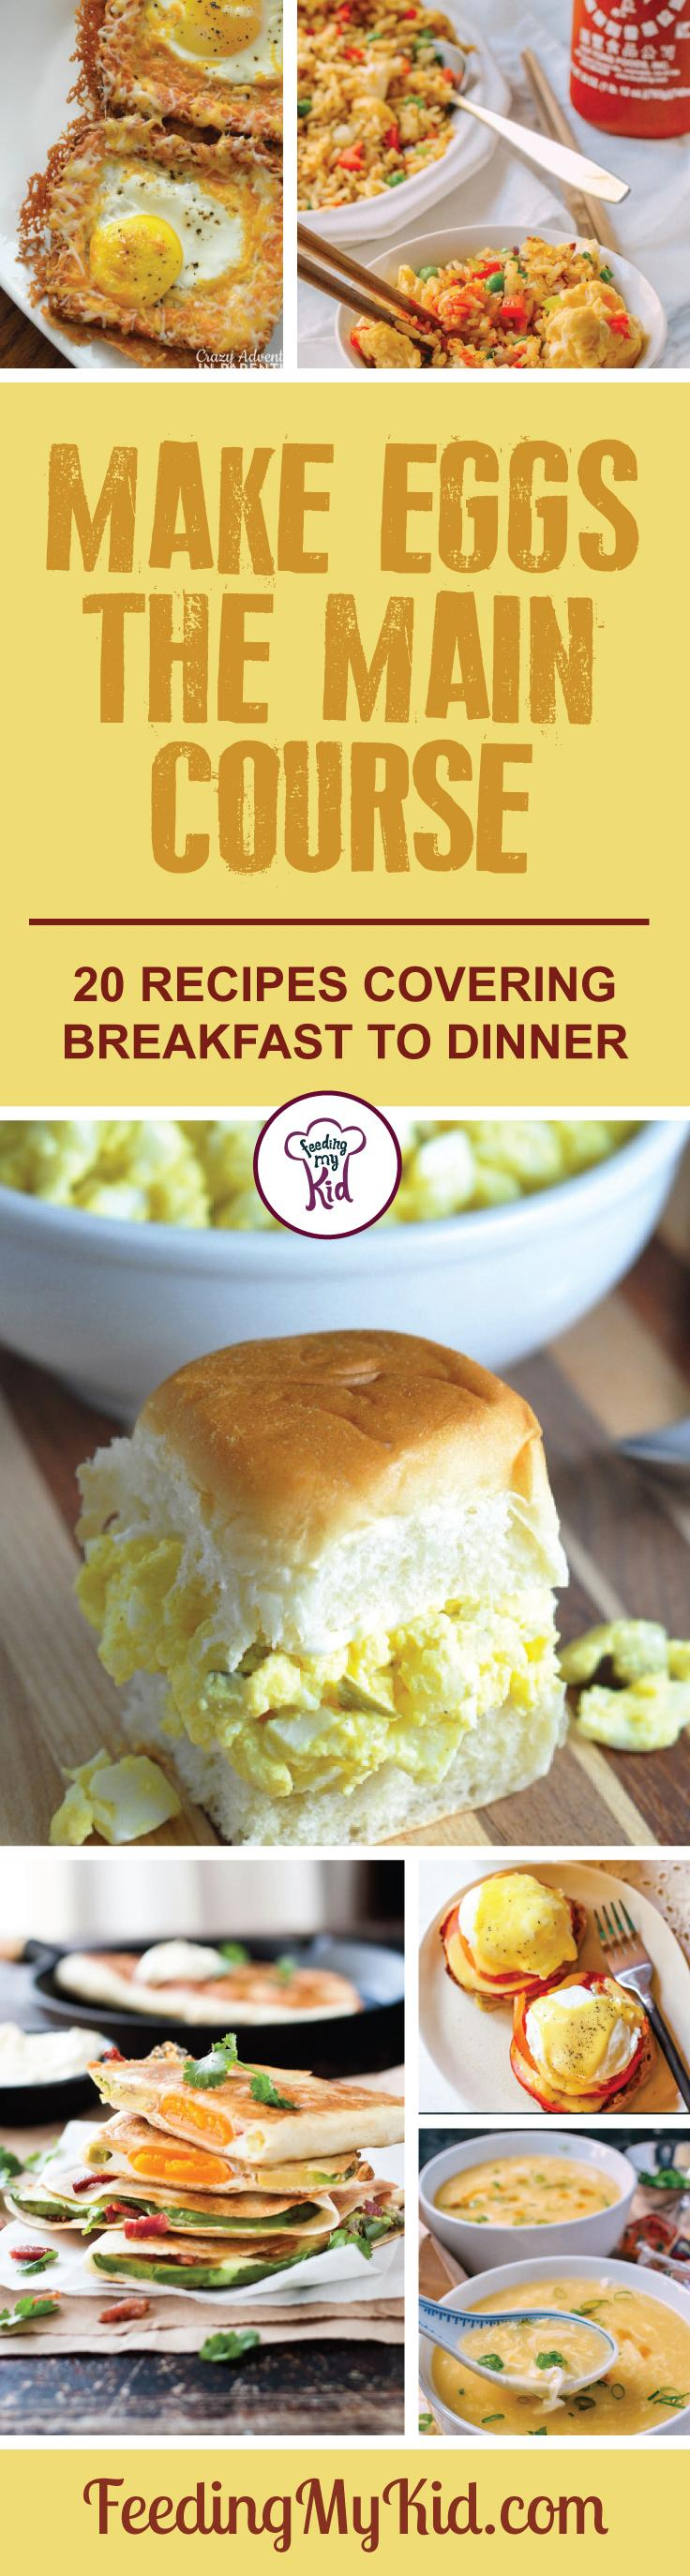 Give these great egg recipes for breakfast, lunch and dinner a try! These egg courses make the perfect meal for any time and any occasion! Feeding My Kid is a filled with all the information you need about how to raise your kids, from healthy tips to nutritious recipes. #FeedingMyKid #eggs #eggrecipes #recipes